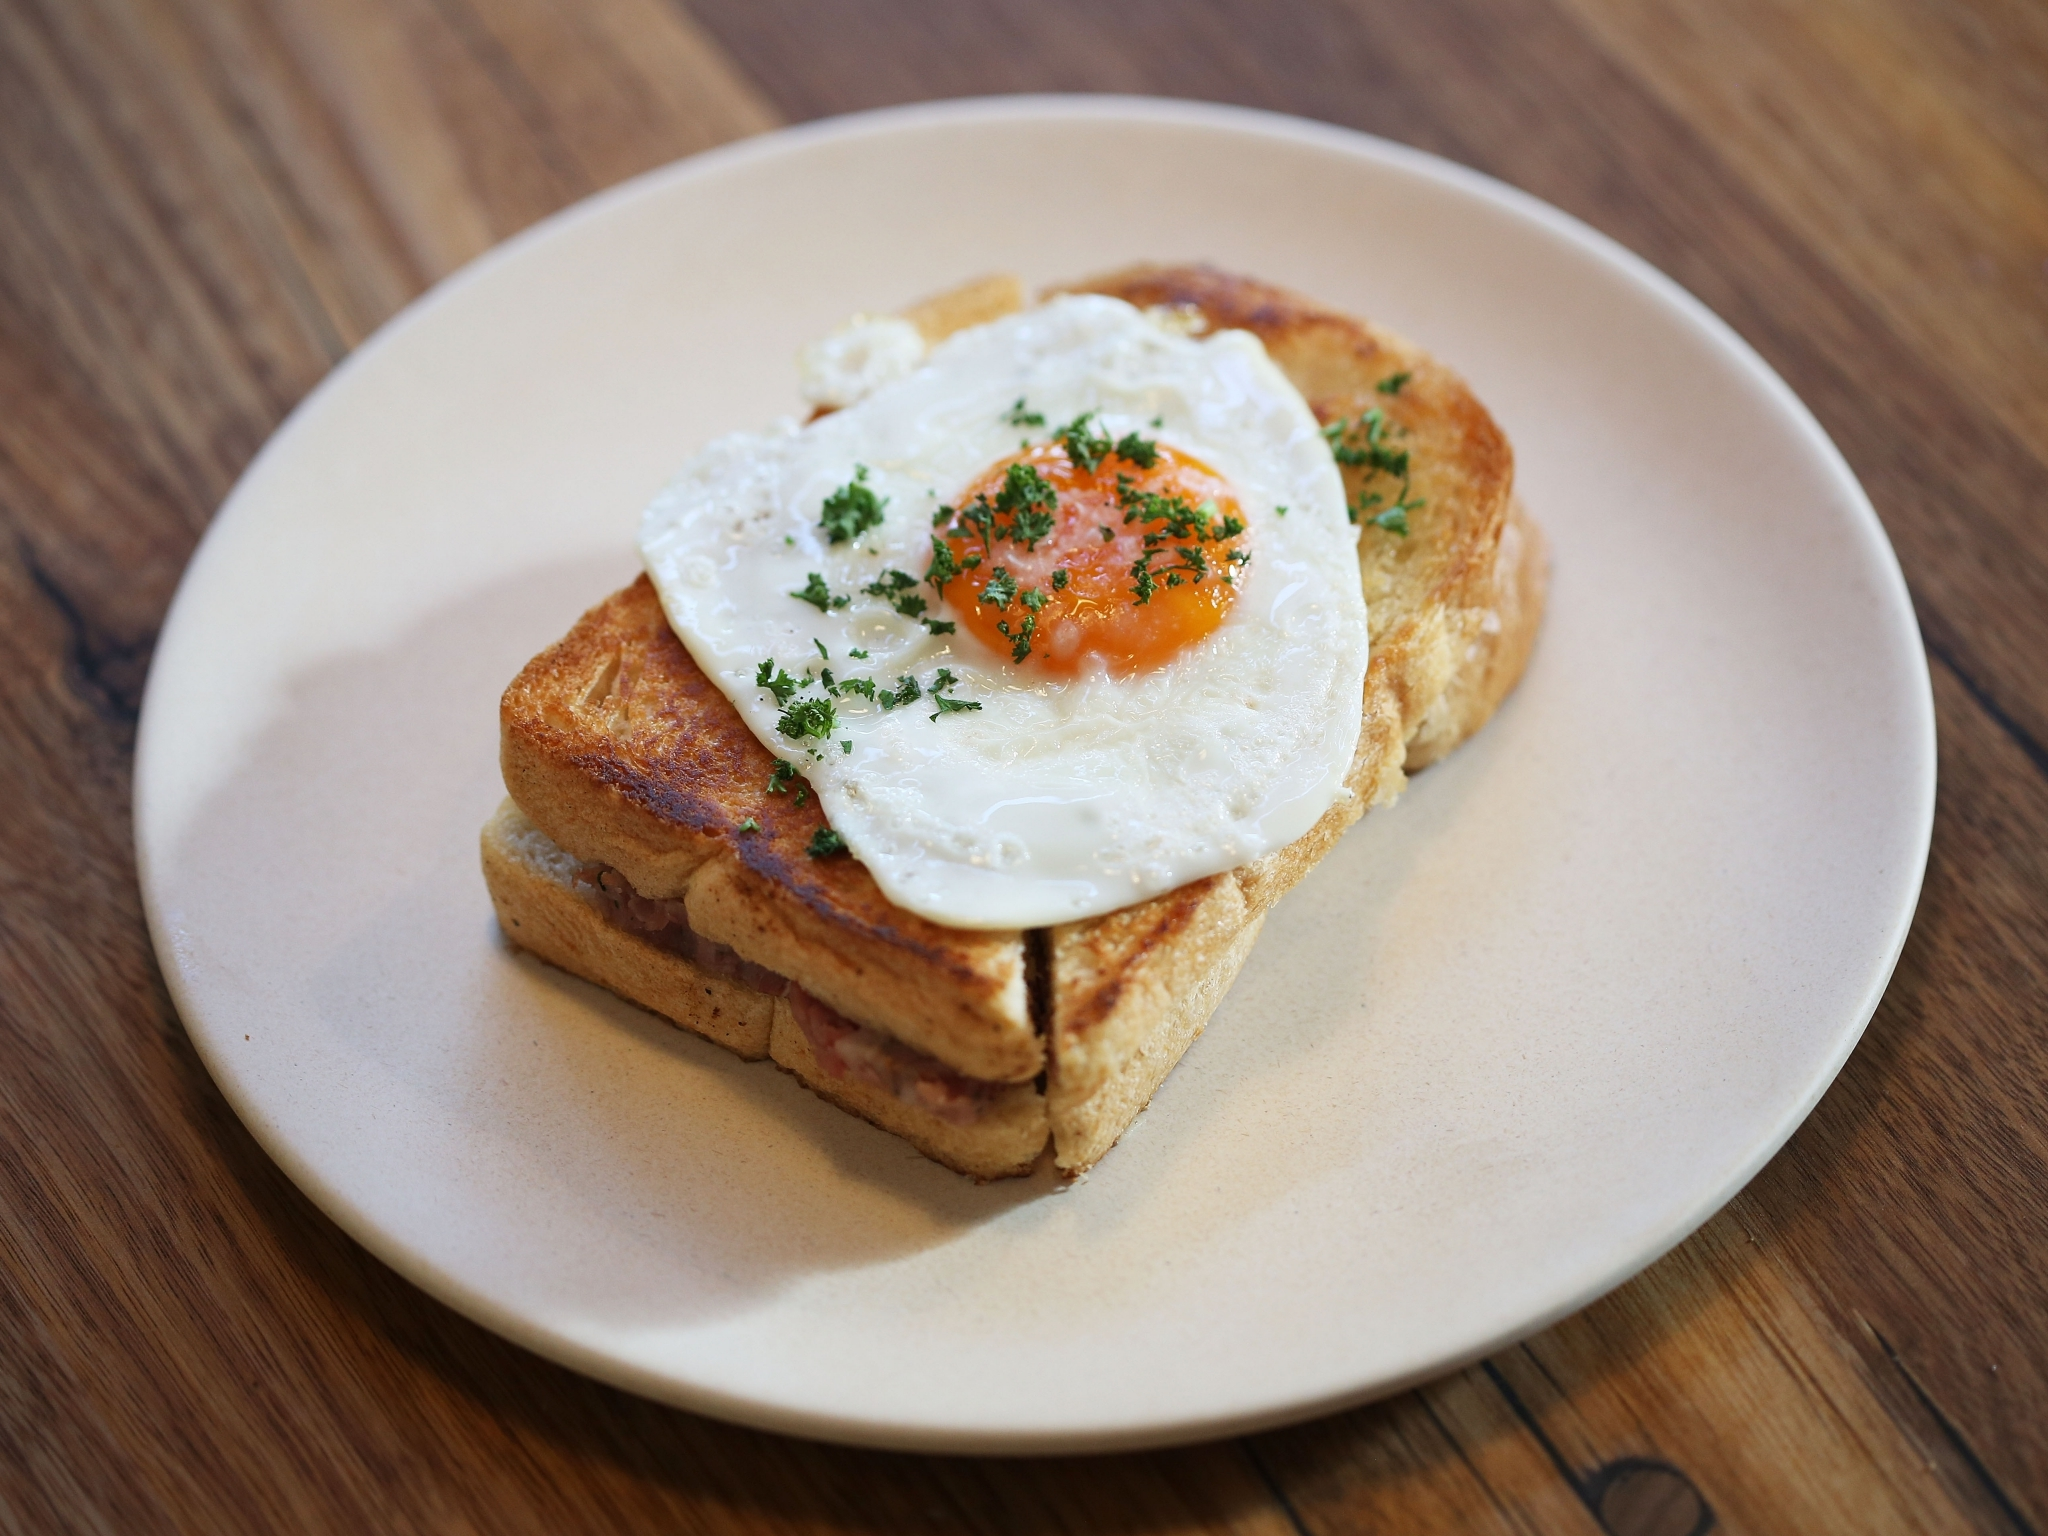 A Croque Madame sandwich topped with a fried egg from the Piggery Café